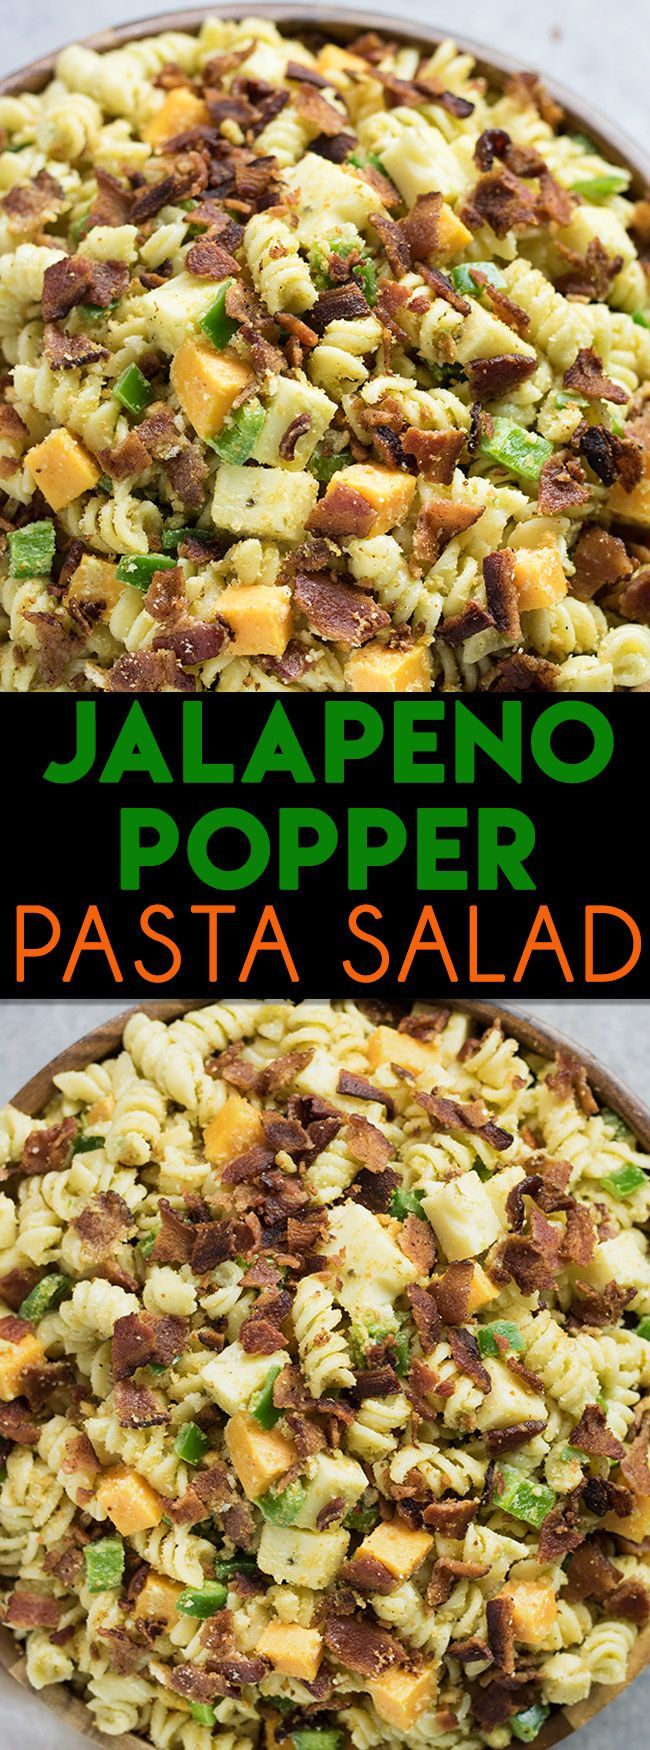 Jalapeno Popper Pasta Salad – This pasta salad tastes just like a jalapeno popper!  Plenty of rotini noodles covered in creamy jalapeno ranch, then loaded up with chopped jalapeno, crispy bacon, cheese, and croutons!